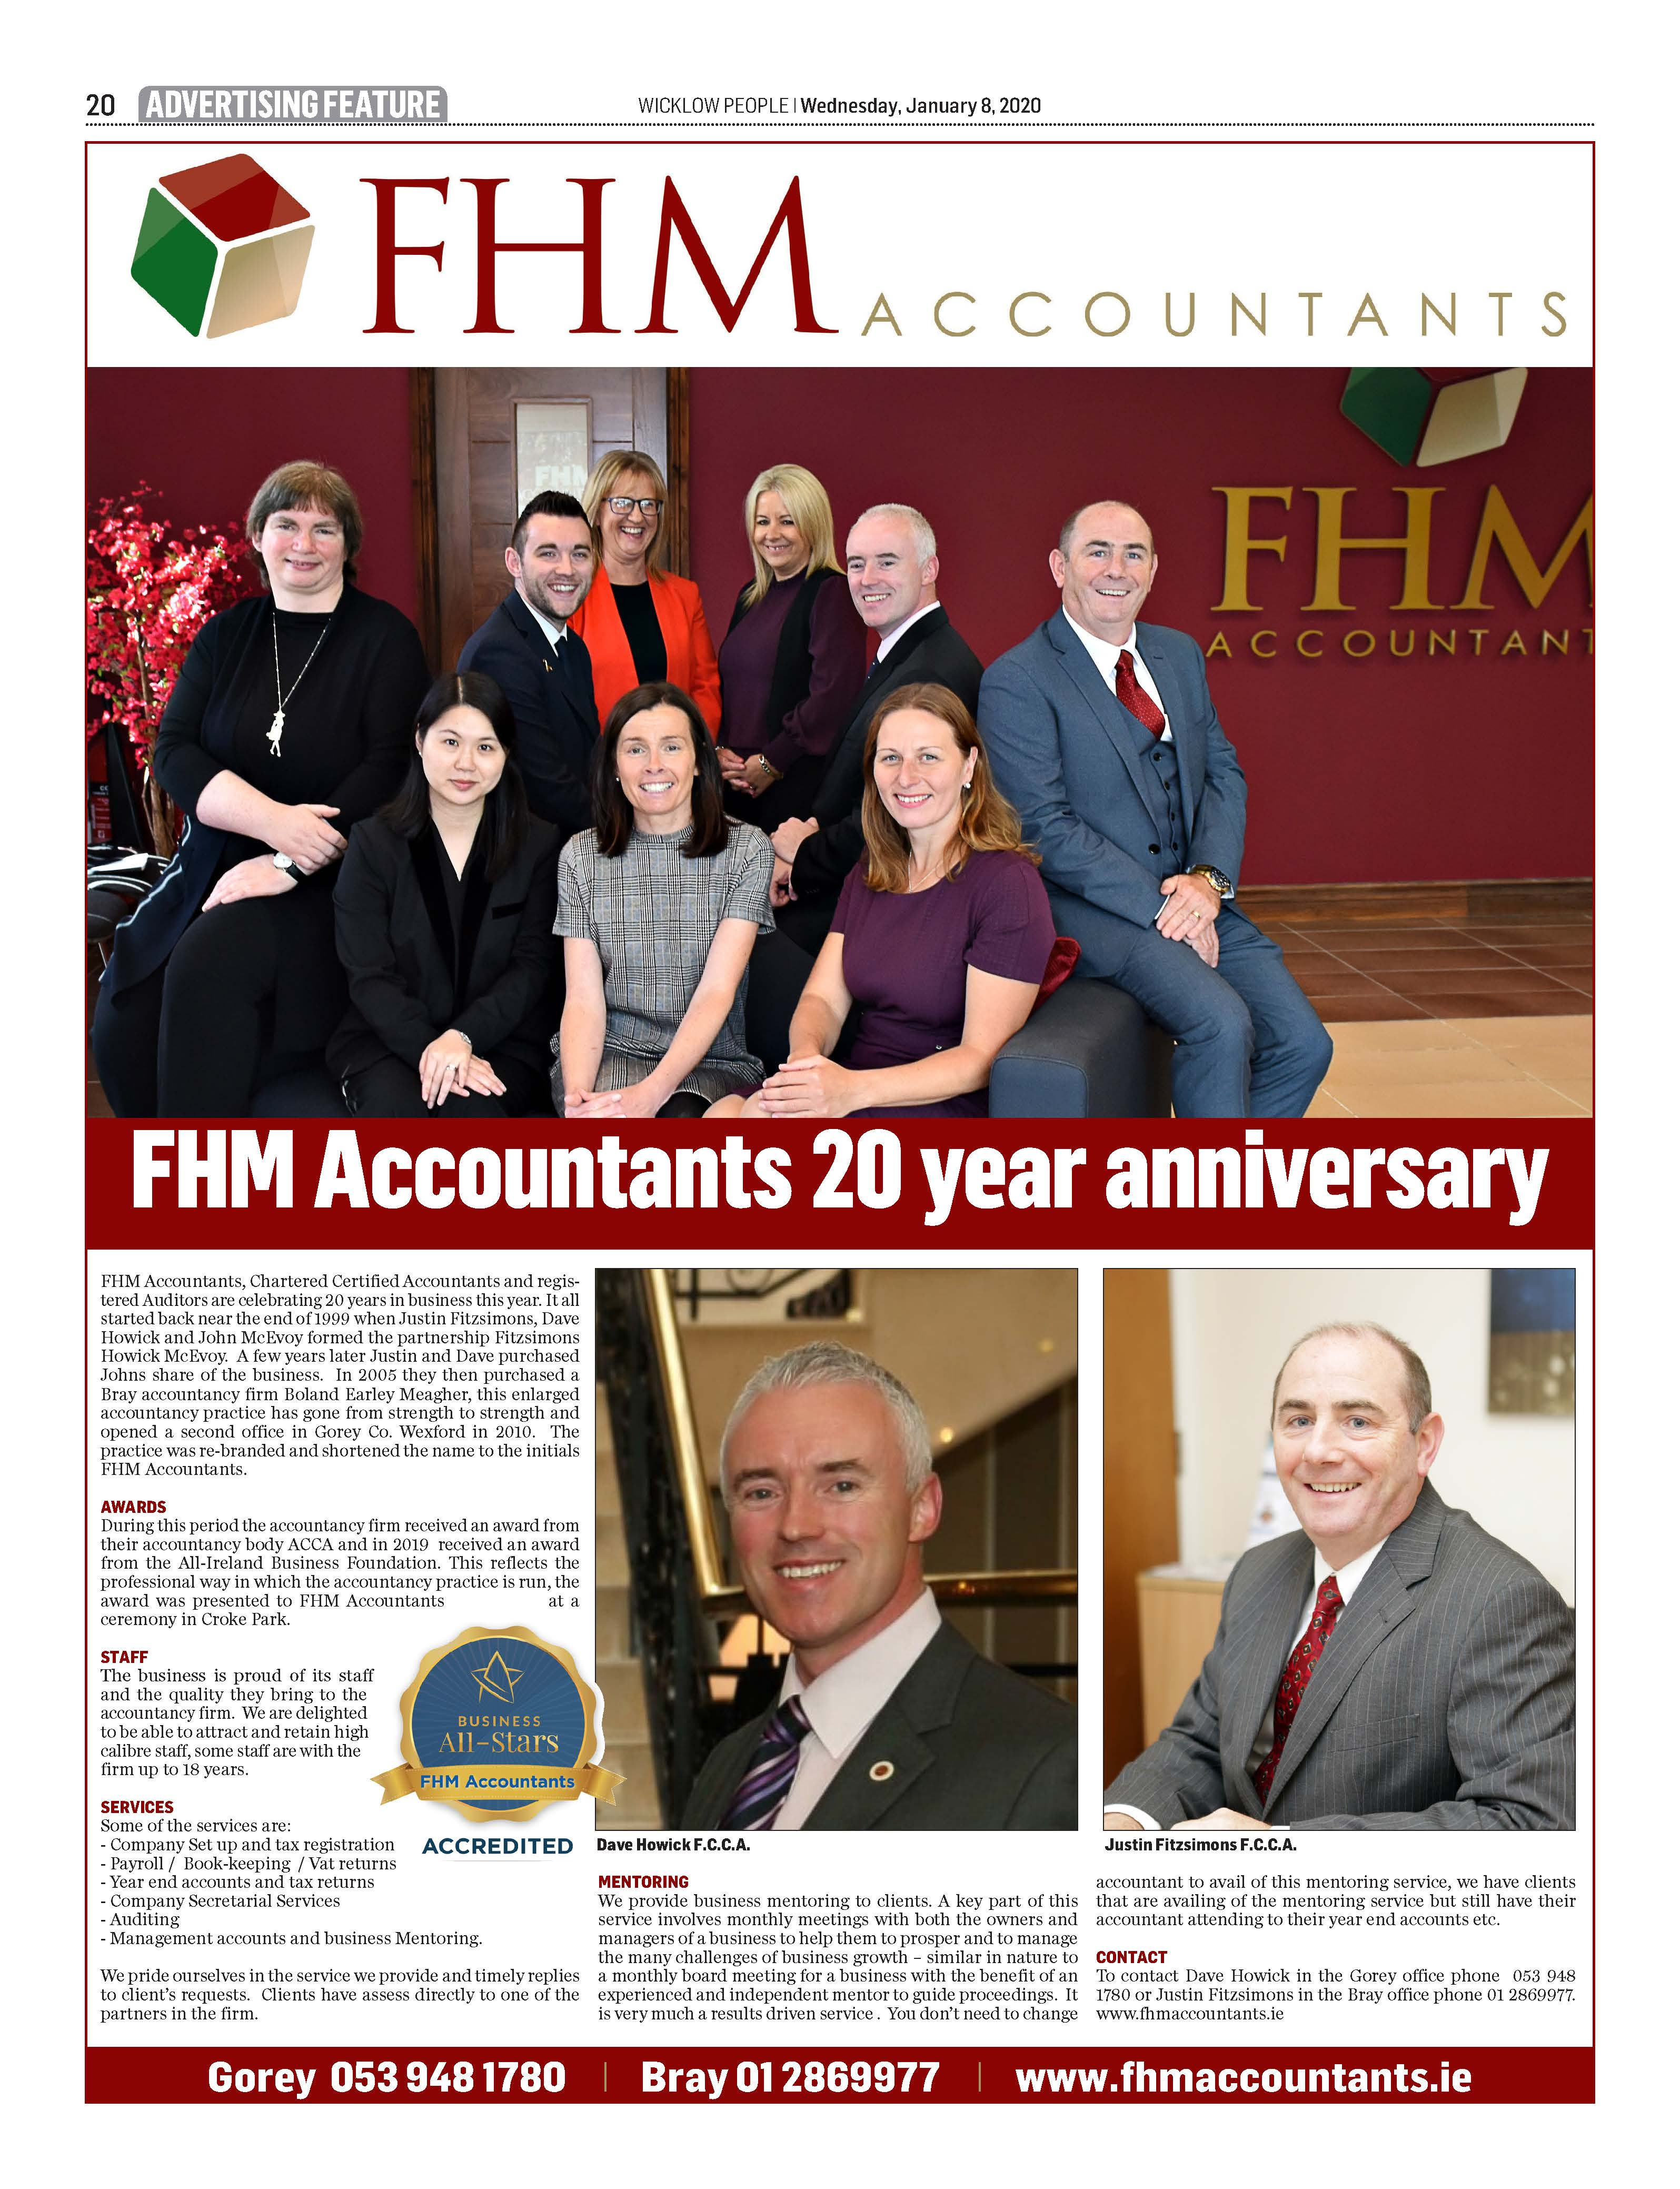 FHM Accountants 20 Years Wicklow People Article